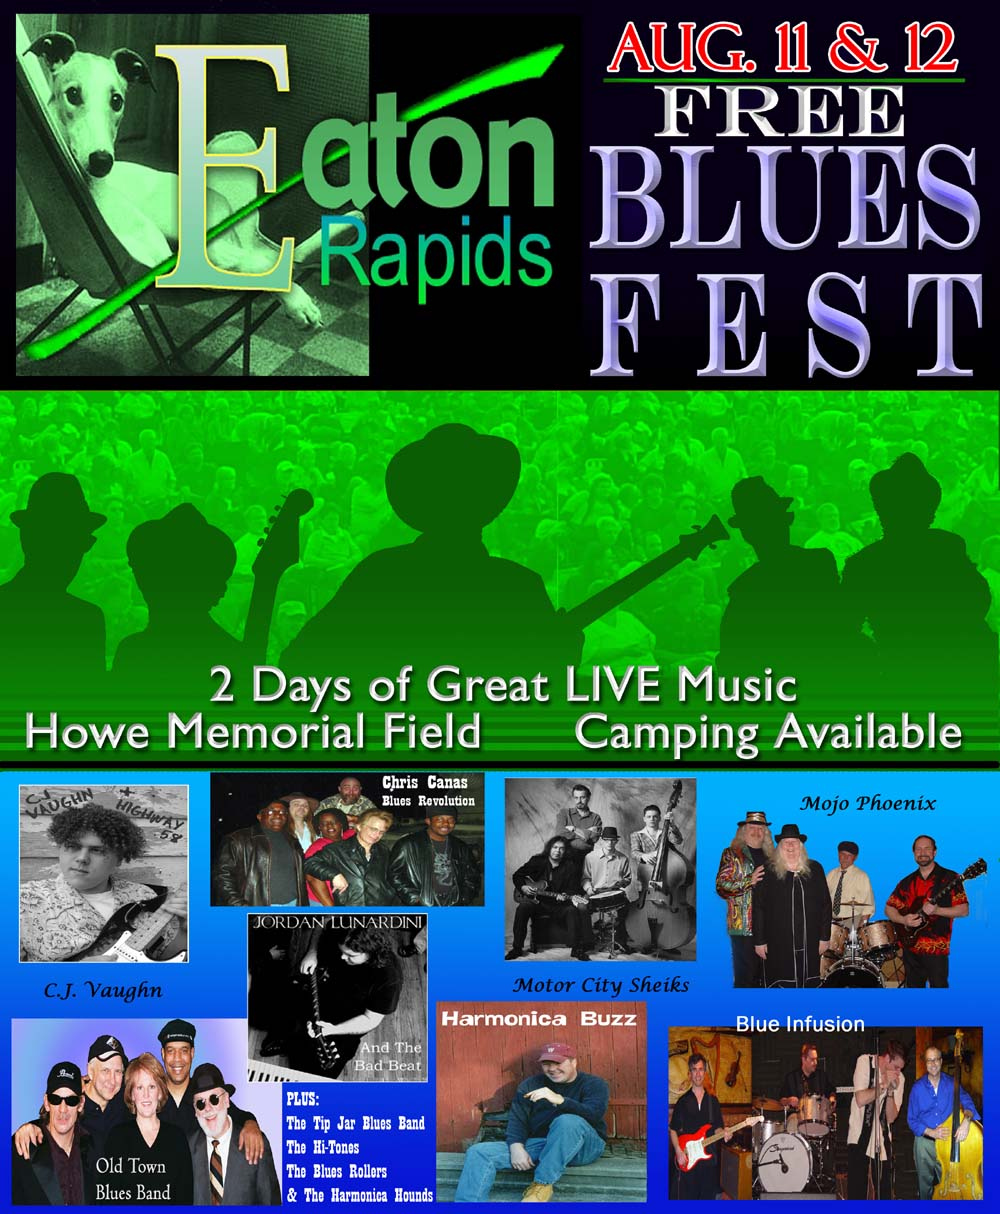 2006 Bluesfest Poster for Eaton Rapids